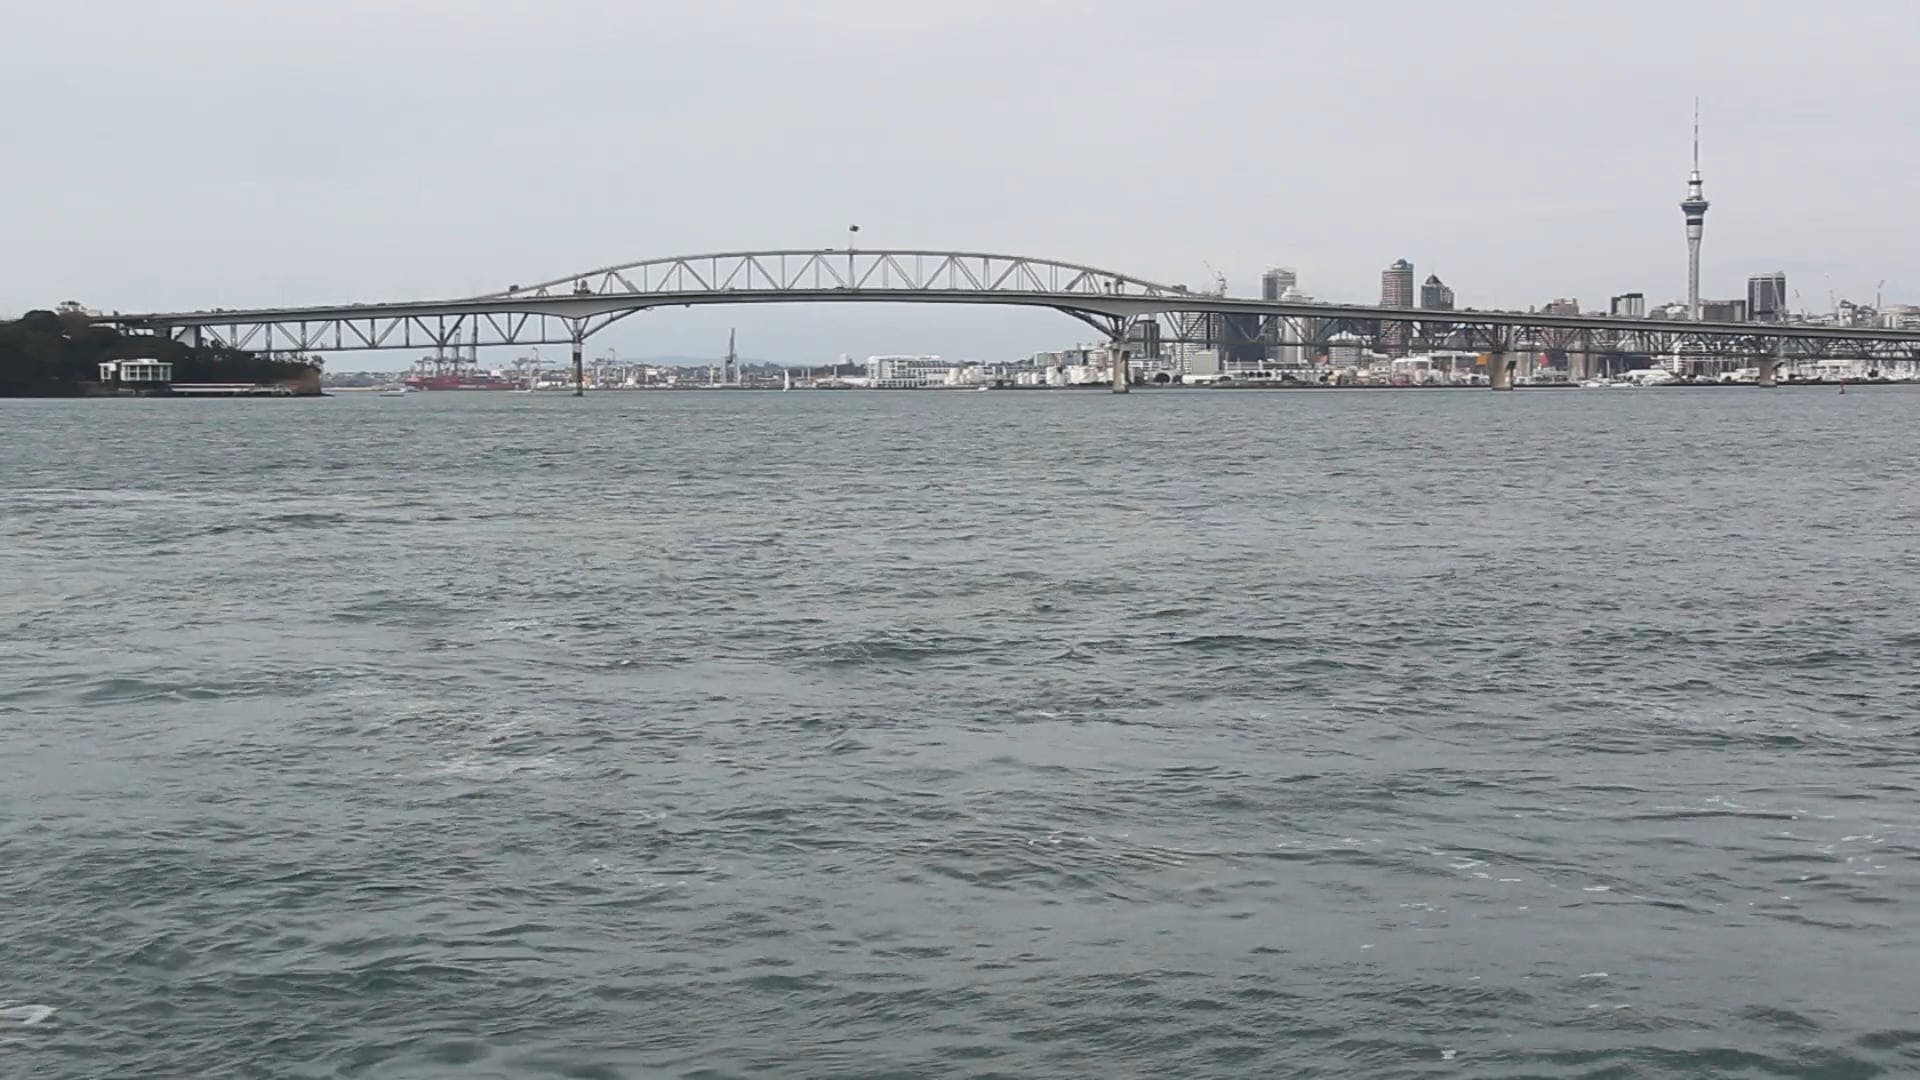 View Of The Bridge And The Sea